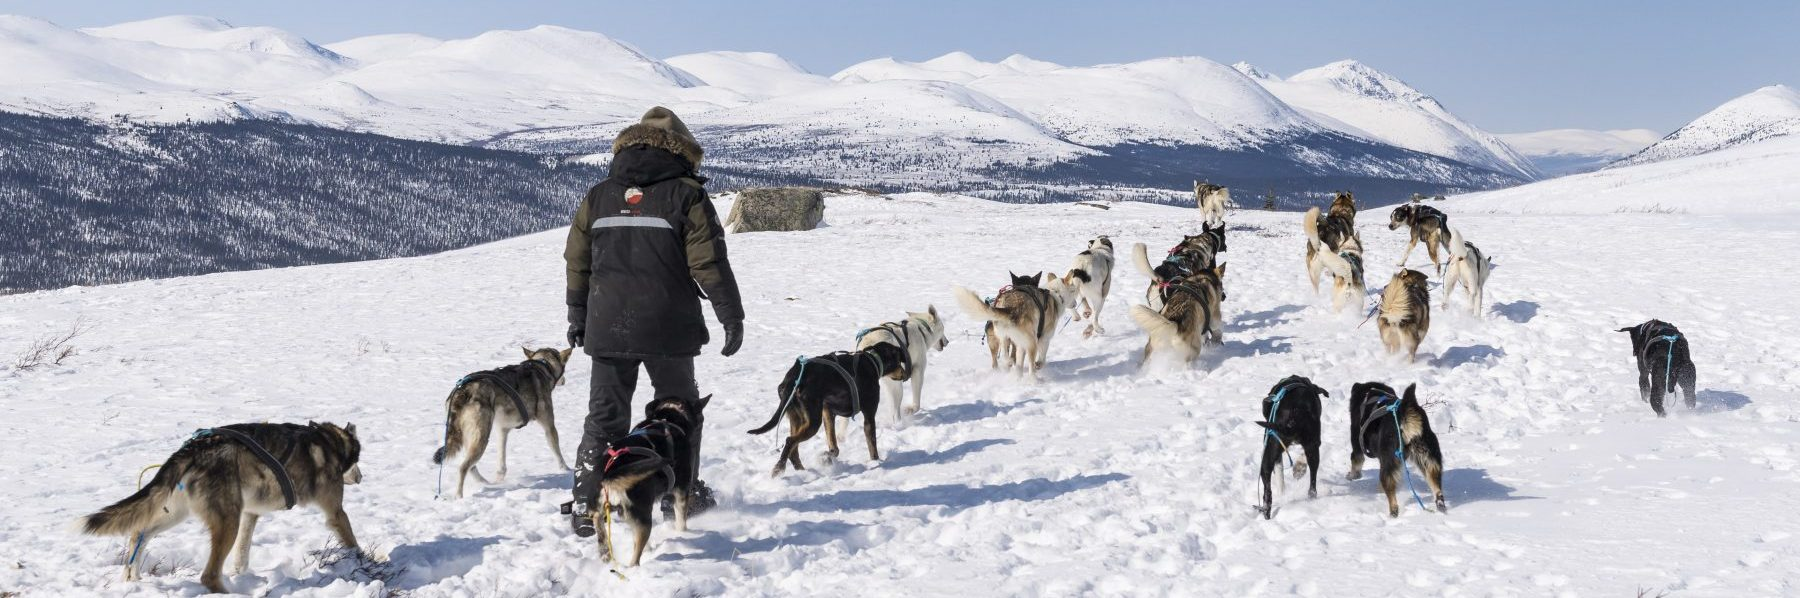 Into the Wild Adventures, dog sledding tours and winter adventures in the Yukon Territory, Canada - Our philosophy: ethical mushing